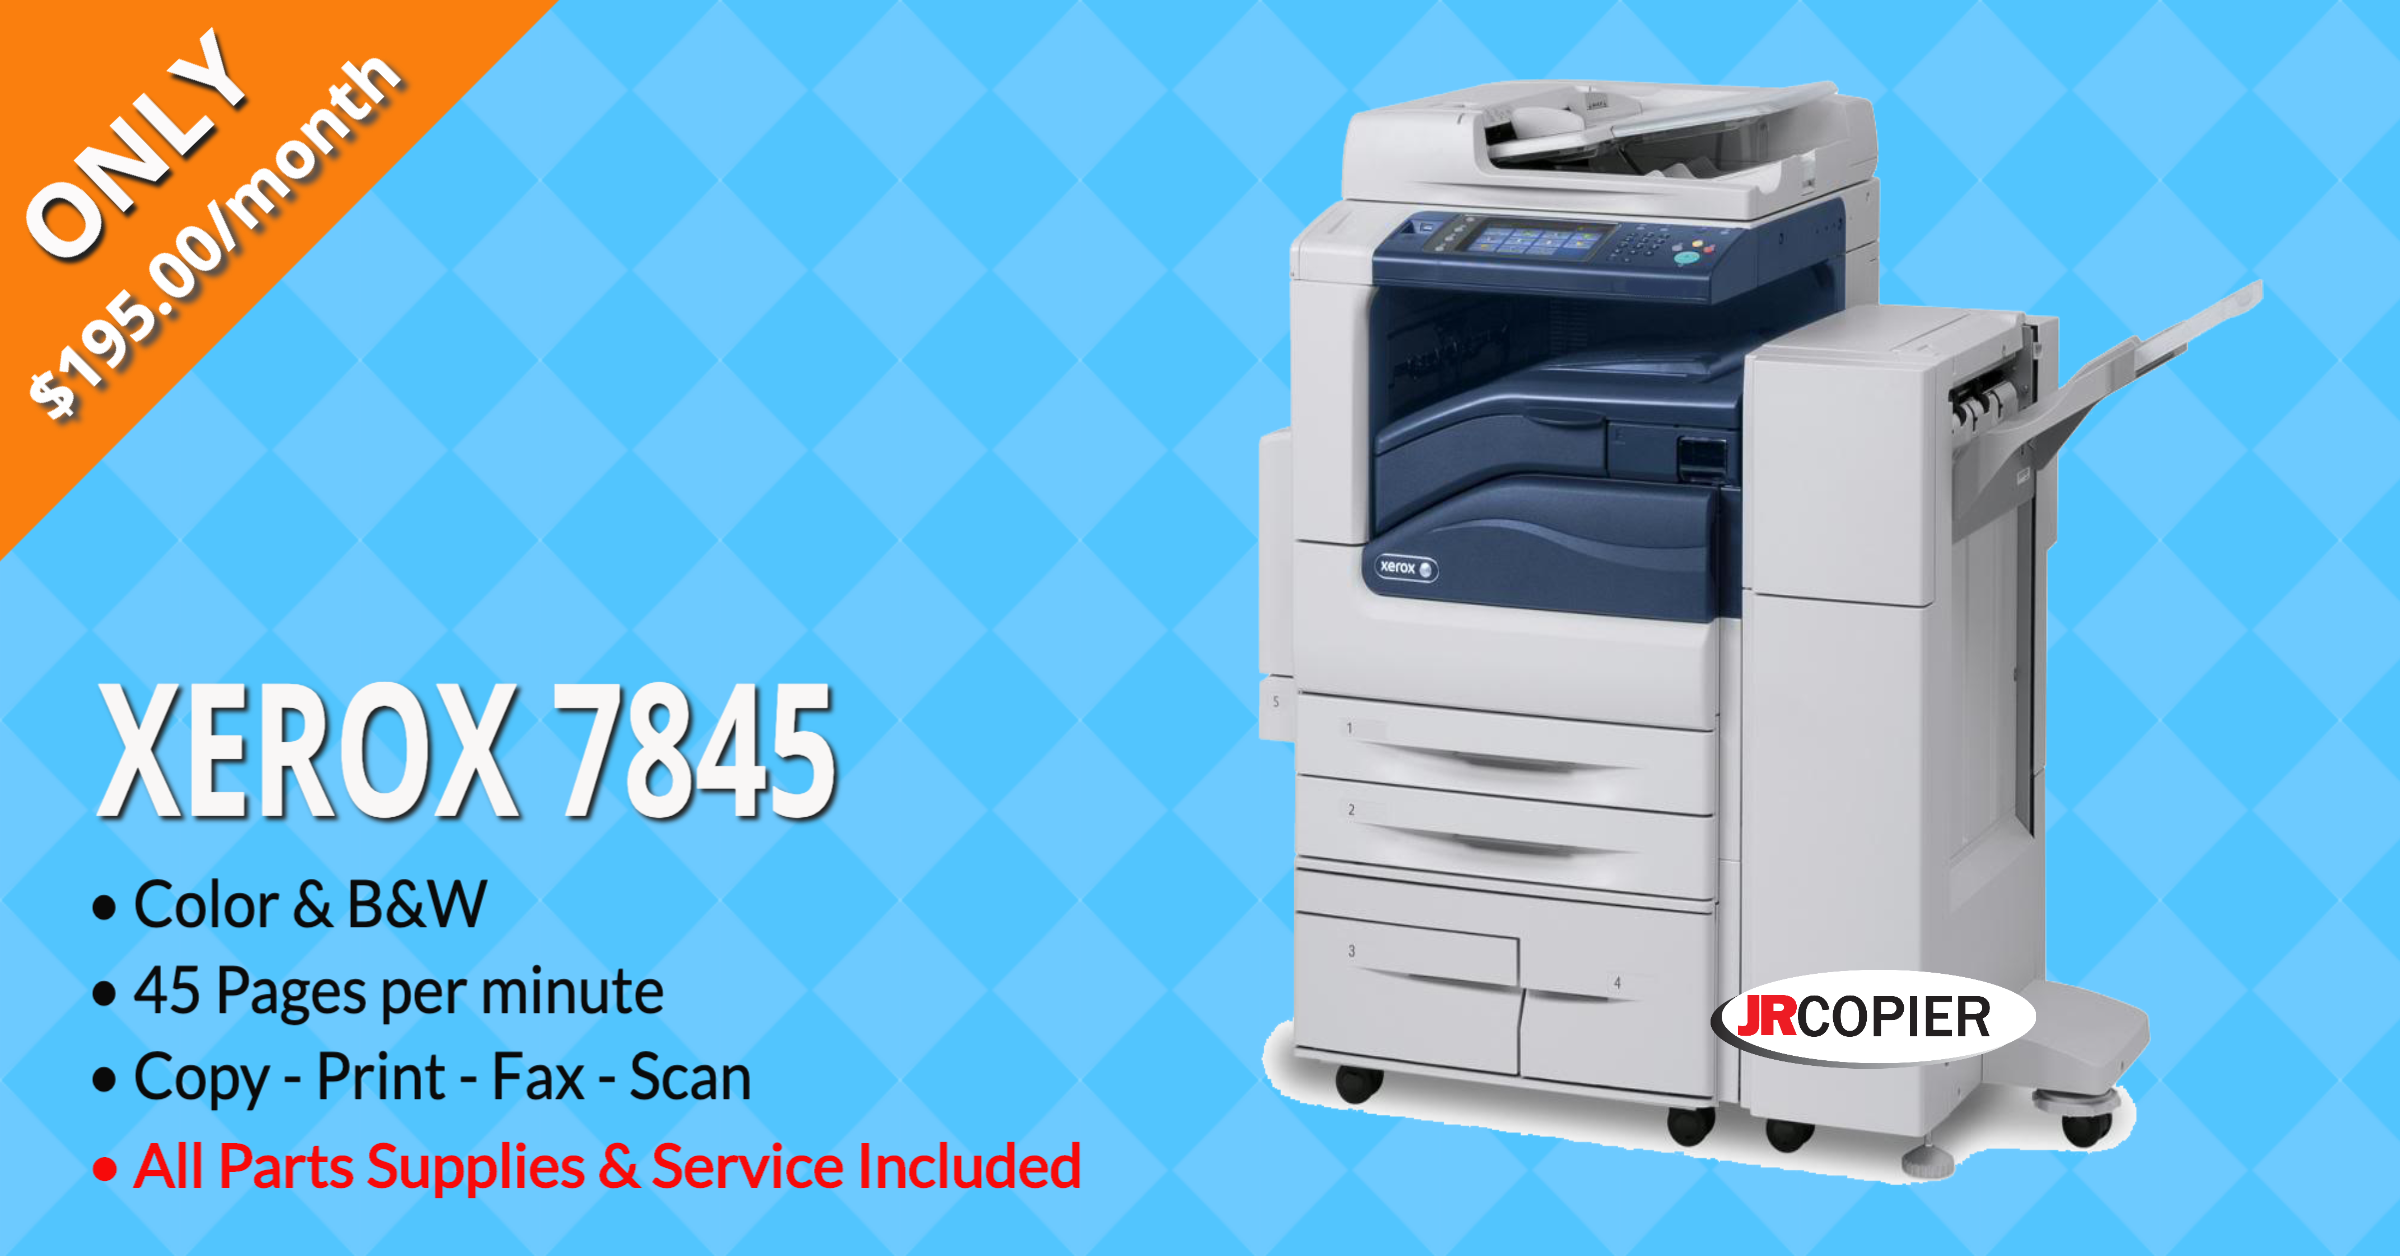 Office Printer Rental 34201, 34202, 34203, 34204, 34205, 34206, 34207, 34208, 34209, 34210, 34211, 34212, 34280, 34281, 34282